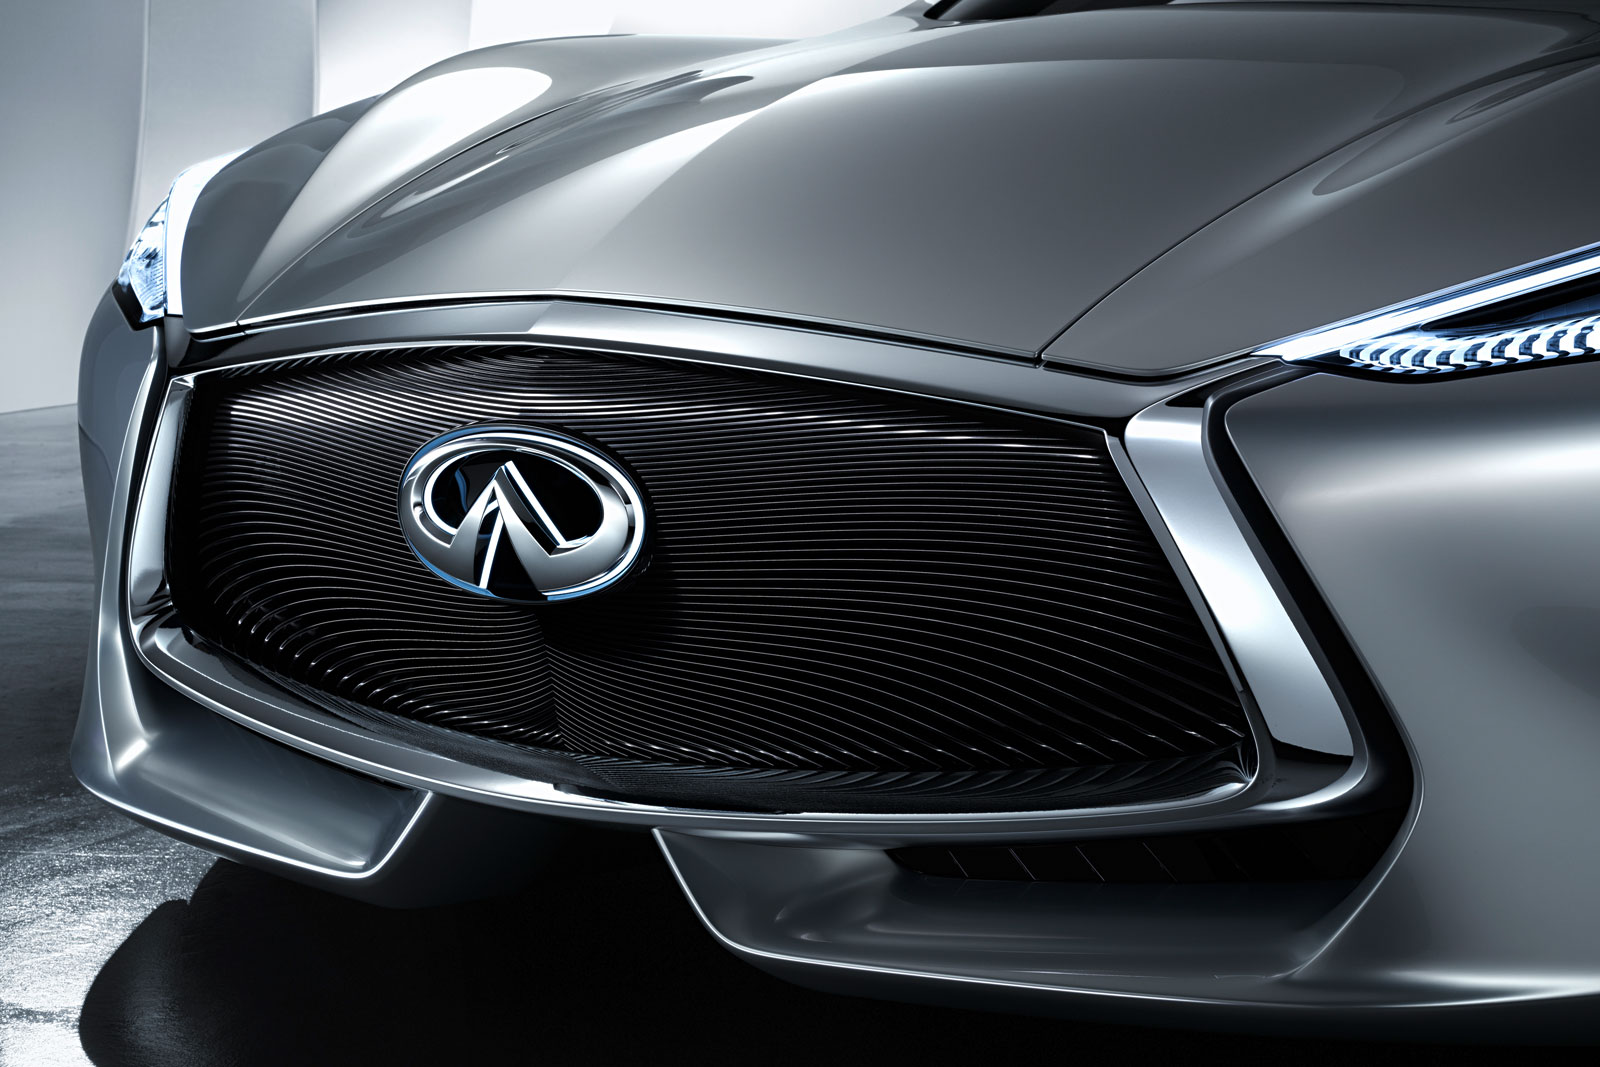 Infiniti Q80 Inspiration Concept - Front Grille